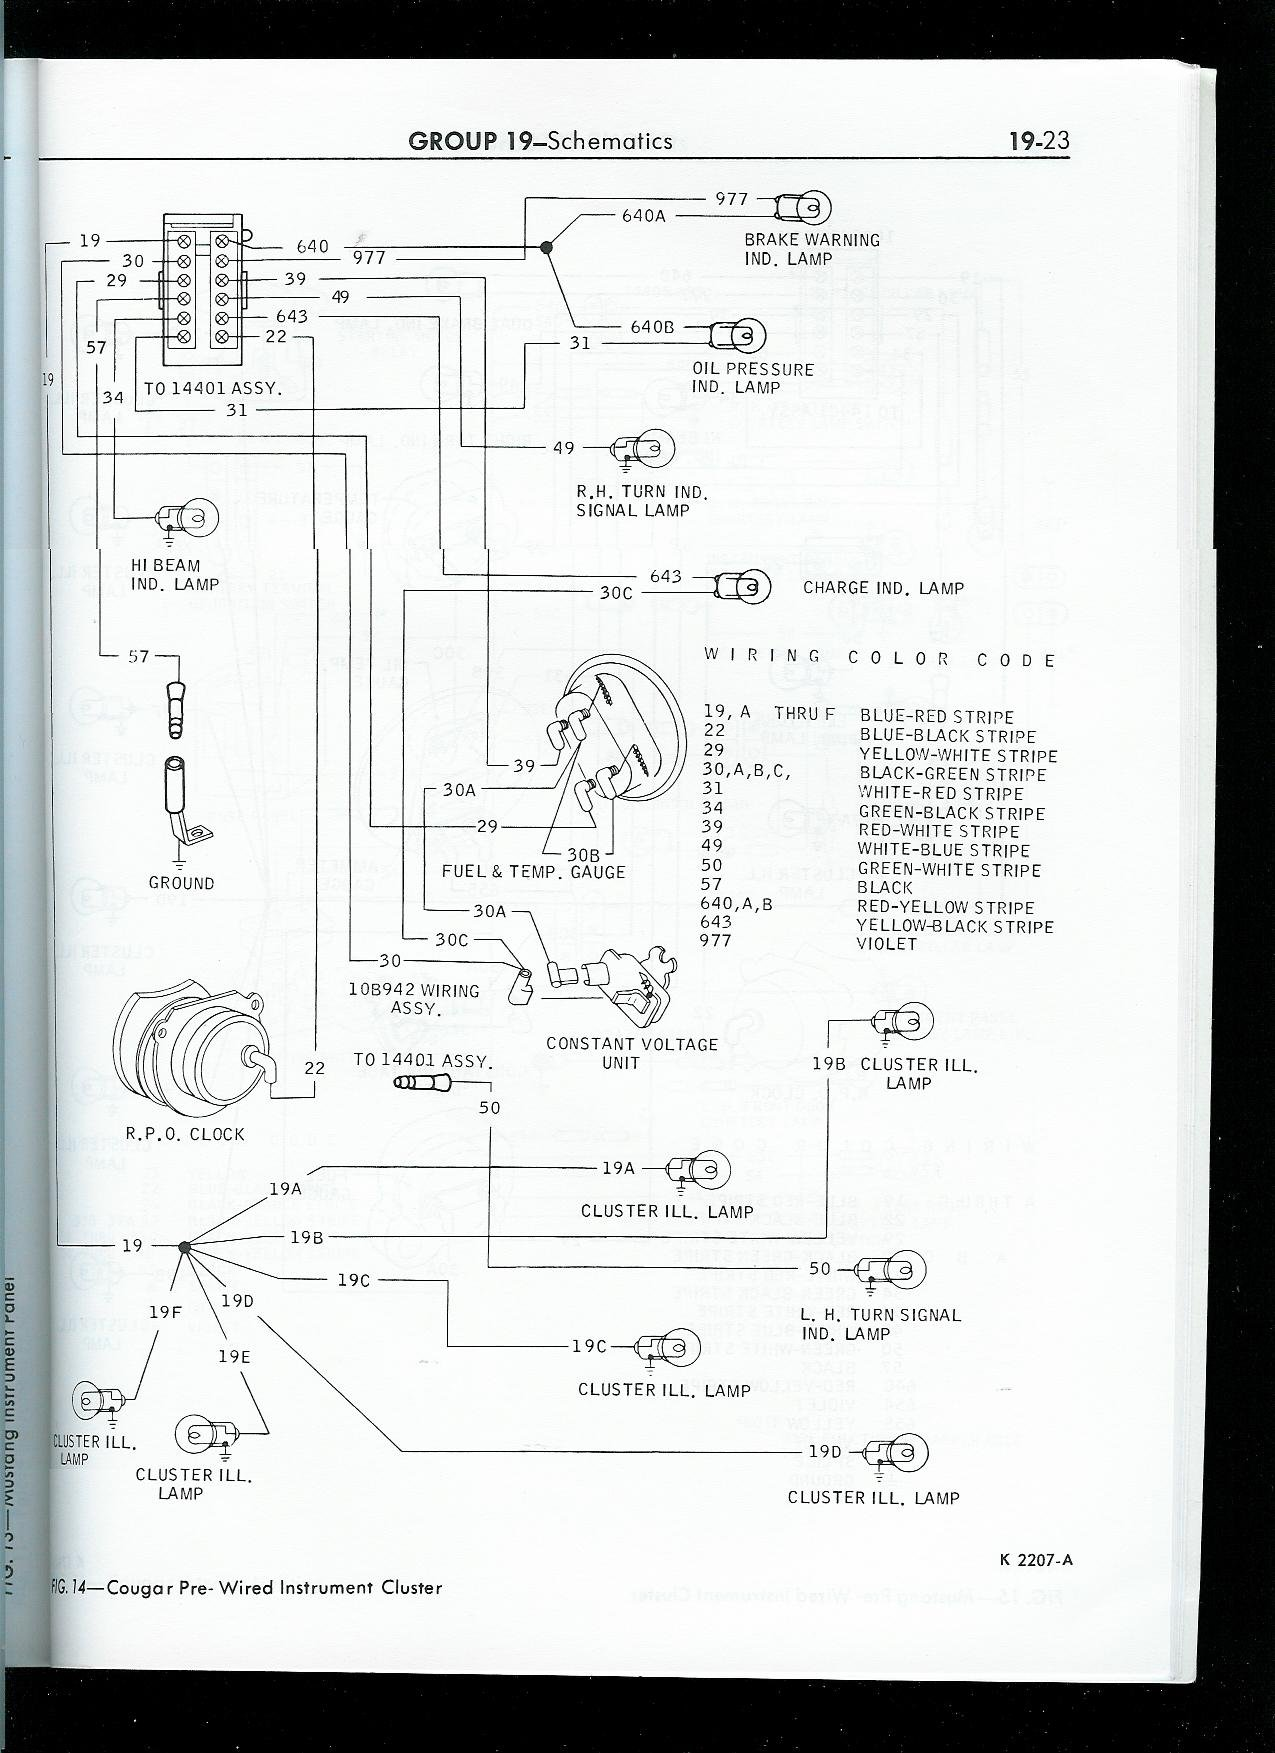 1965 Ford Mustang Wiring Diagram Wiring Harness Wiring Diagram